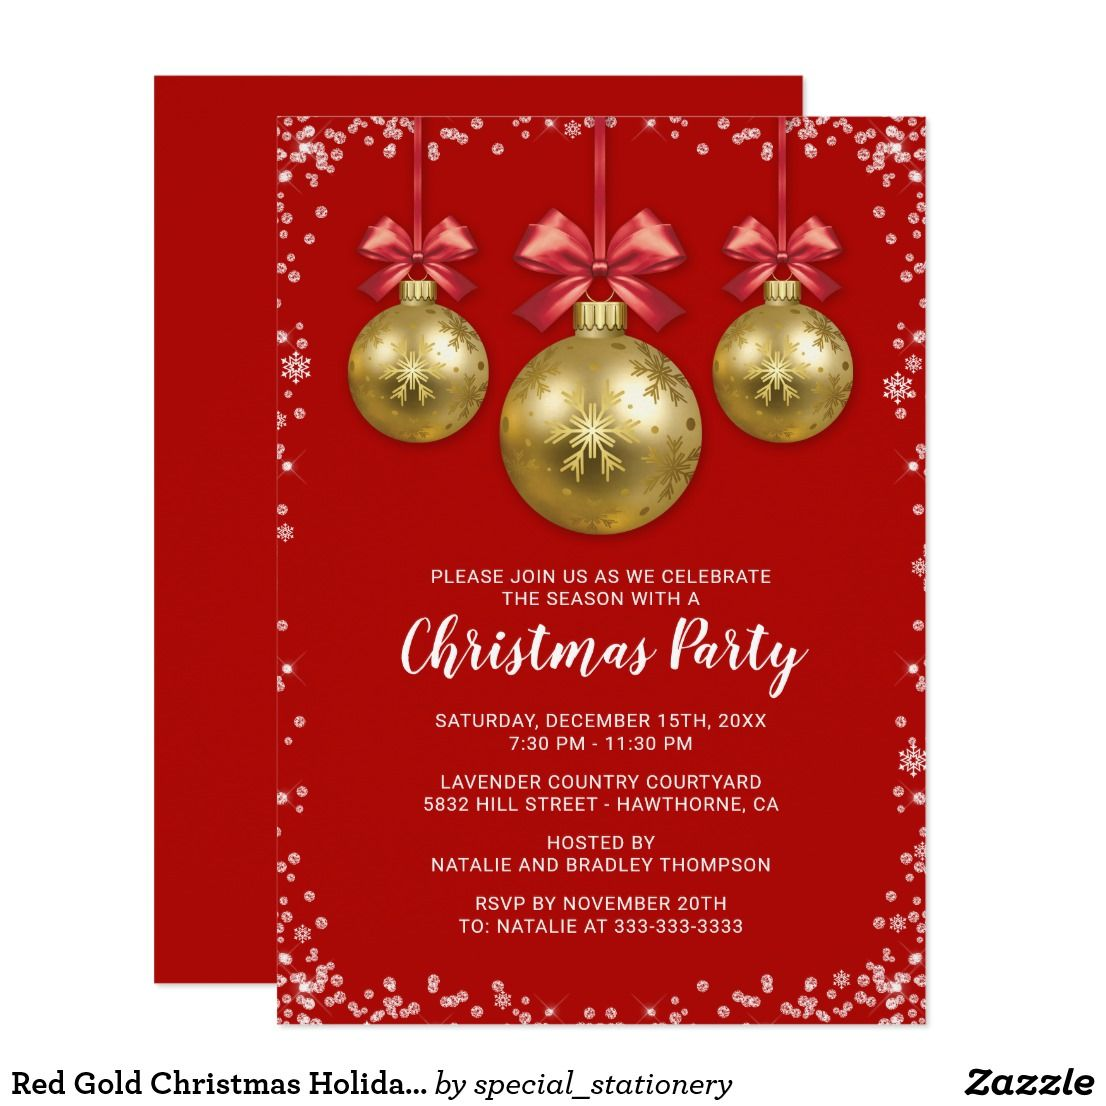 Business corporate christmas holiday party card party invitations business corporate christmas holiday party card monicamarmolfo Gallery